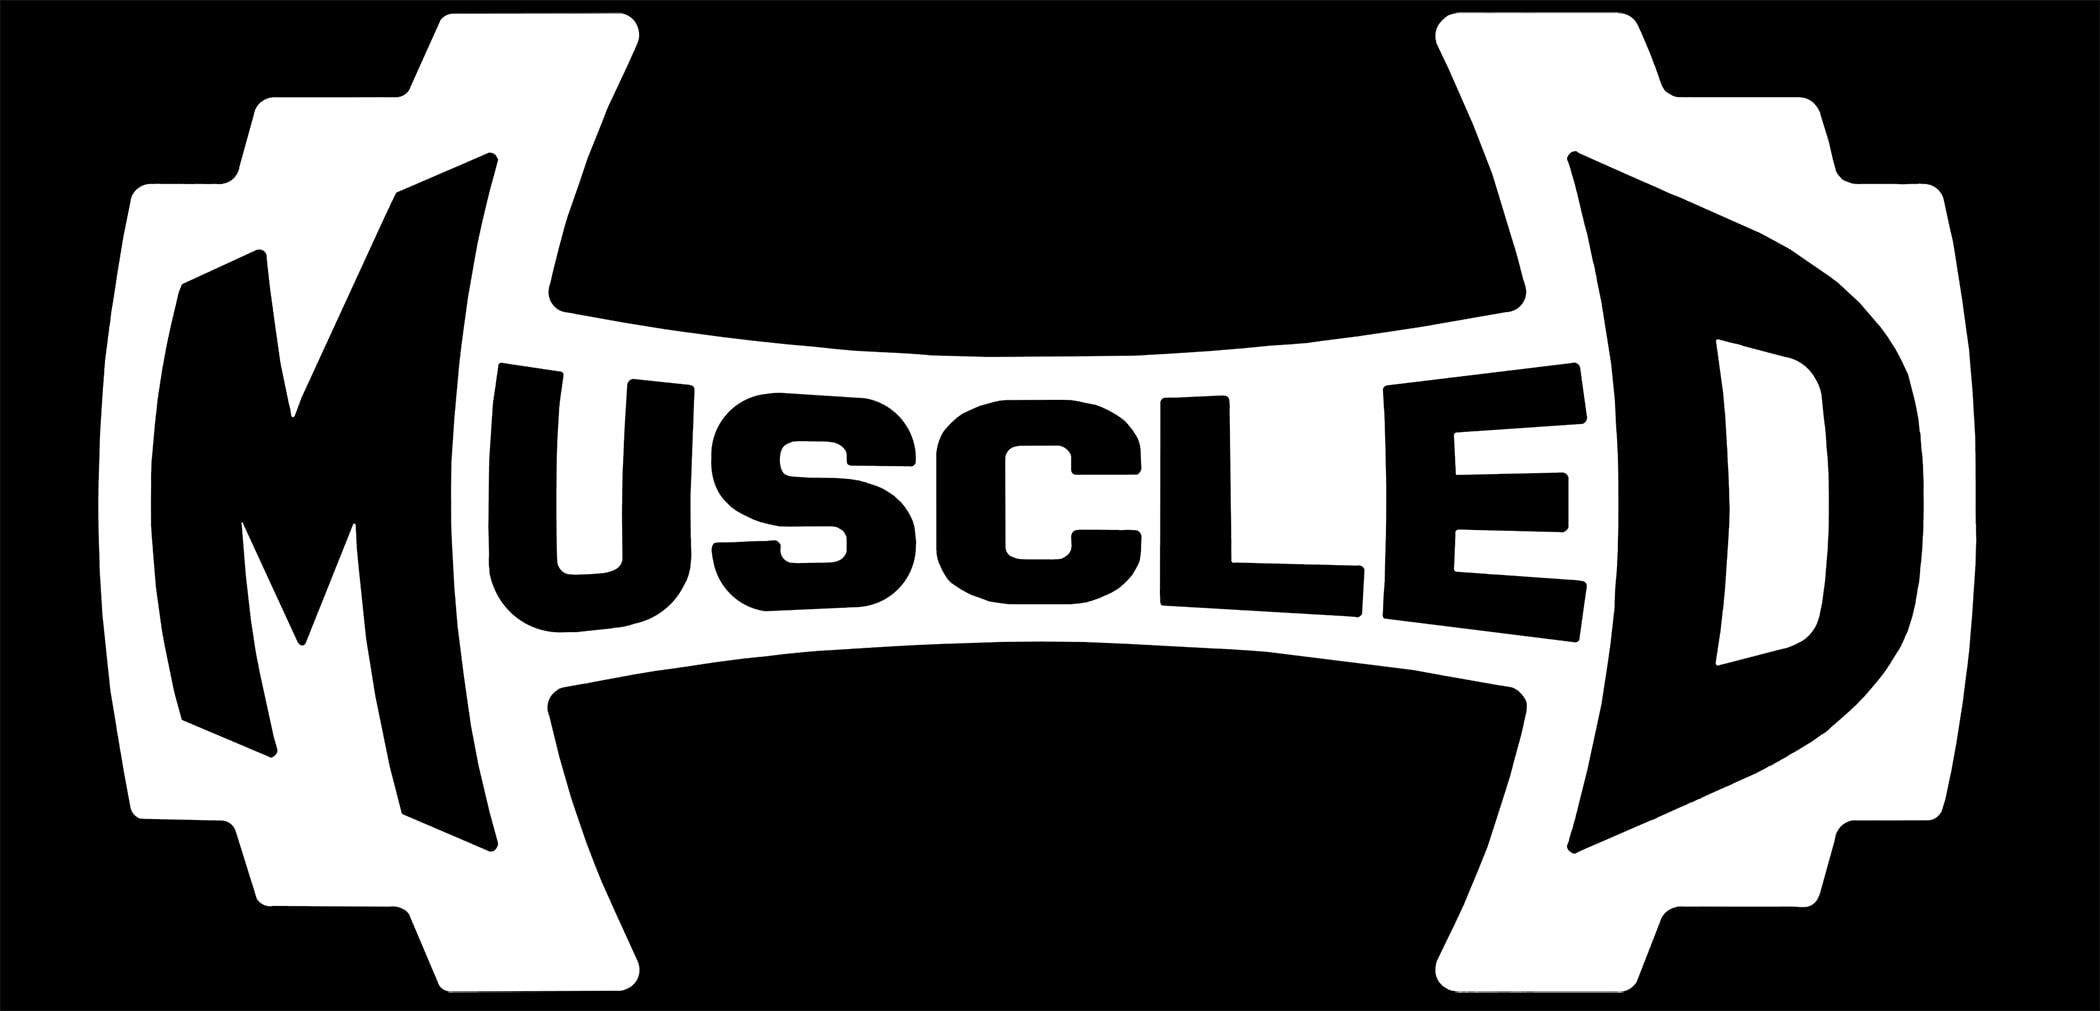 Muscle d logo white font min muscle d fitness muscle d logo white font min altavistaventures Gallery